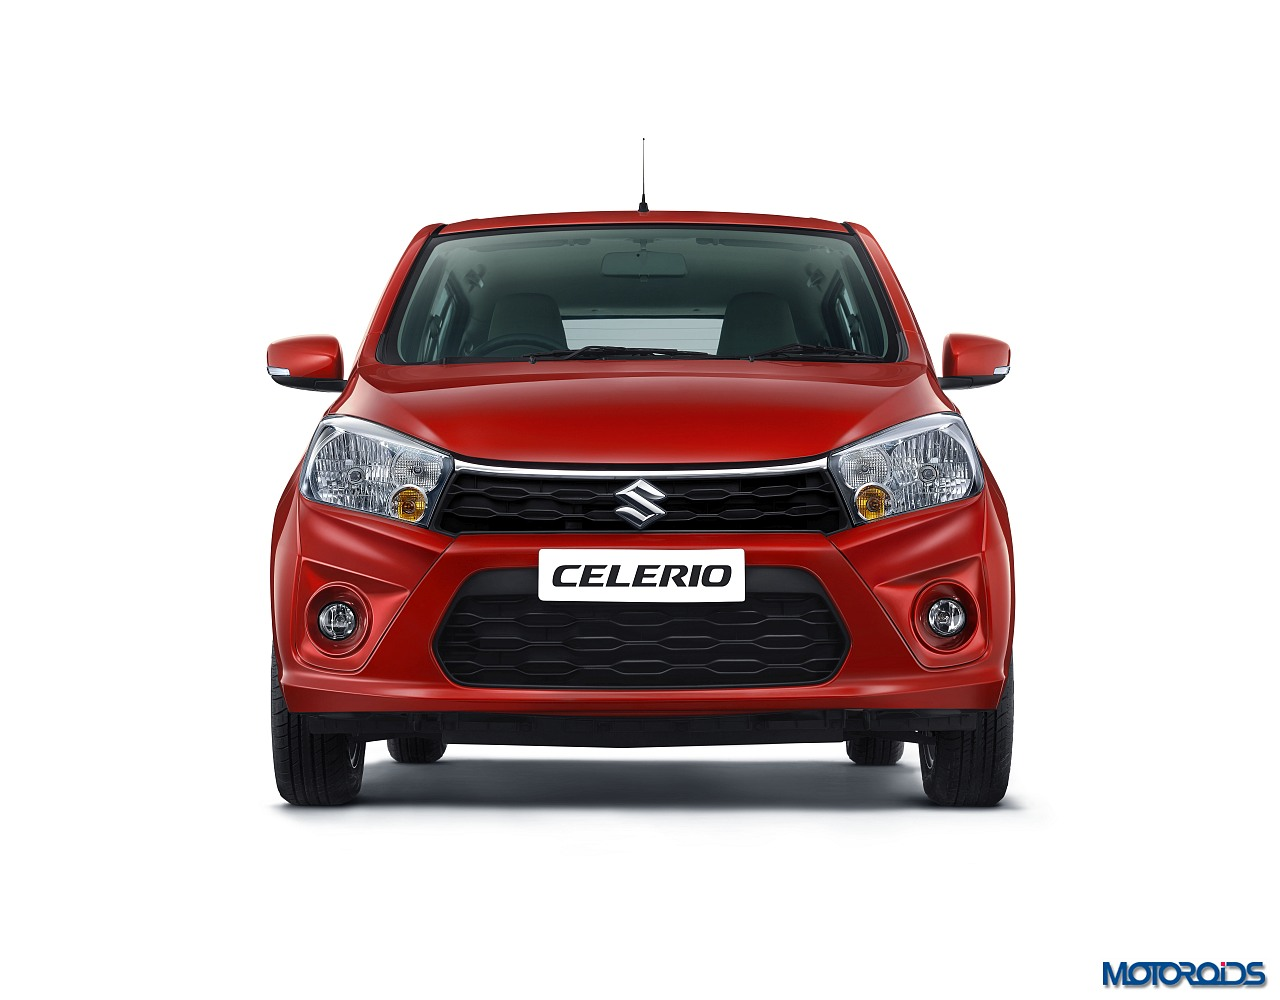 new 2017 maruti suzuki celerio facelift launched price images features and specs motoroids. Black Bedroom Furniture Sets. Home Design Ideas